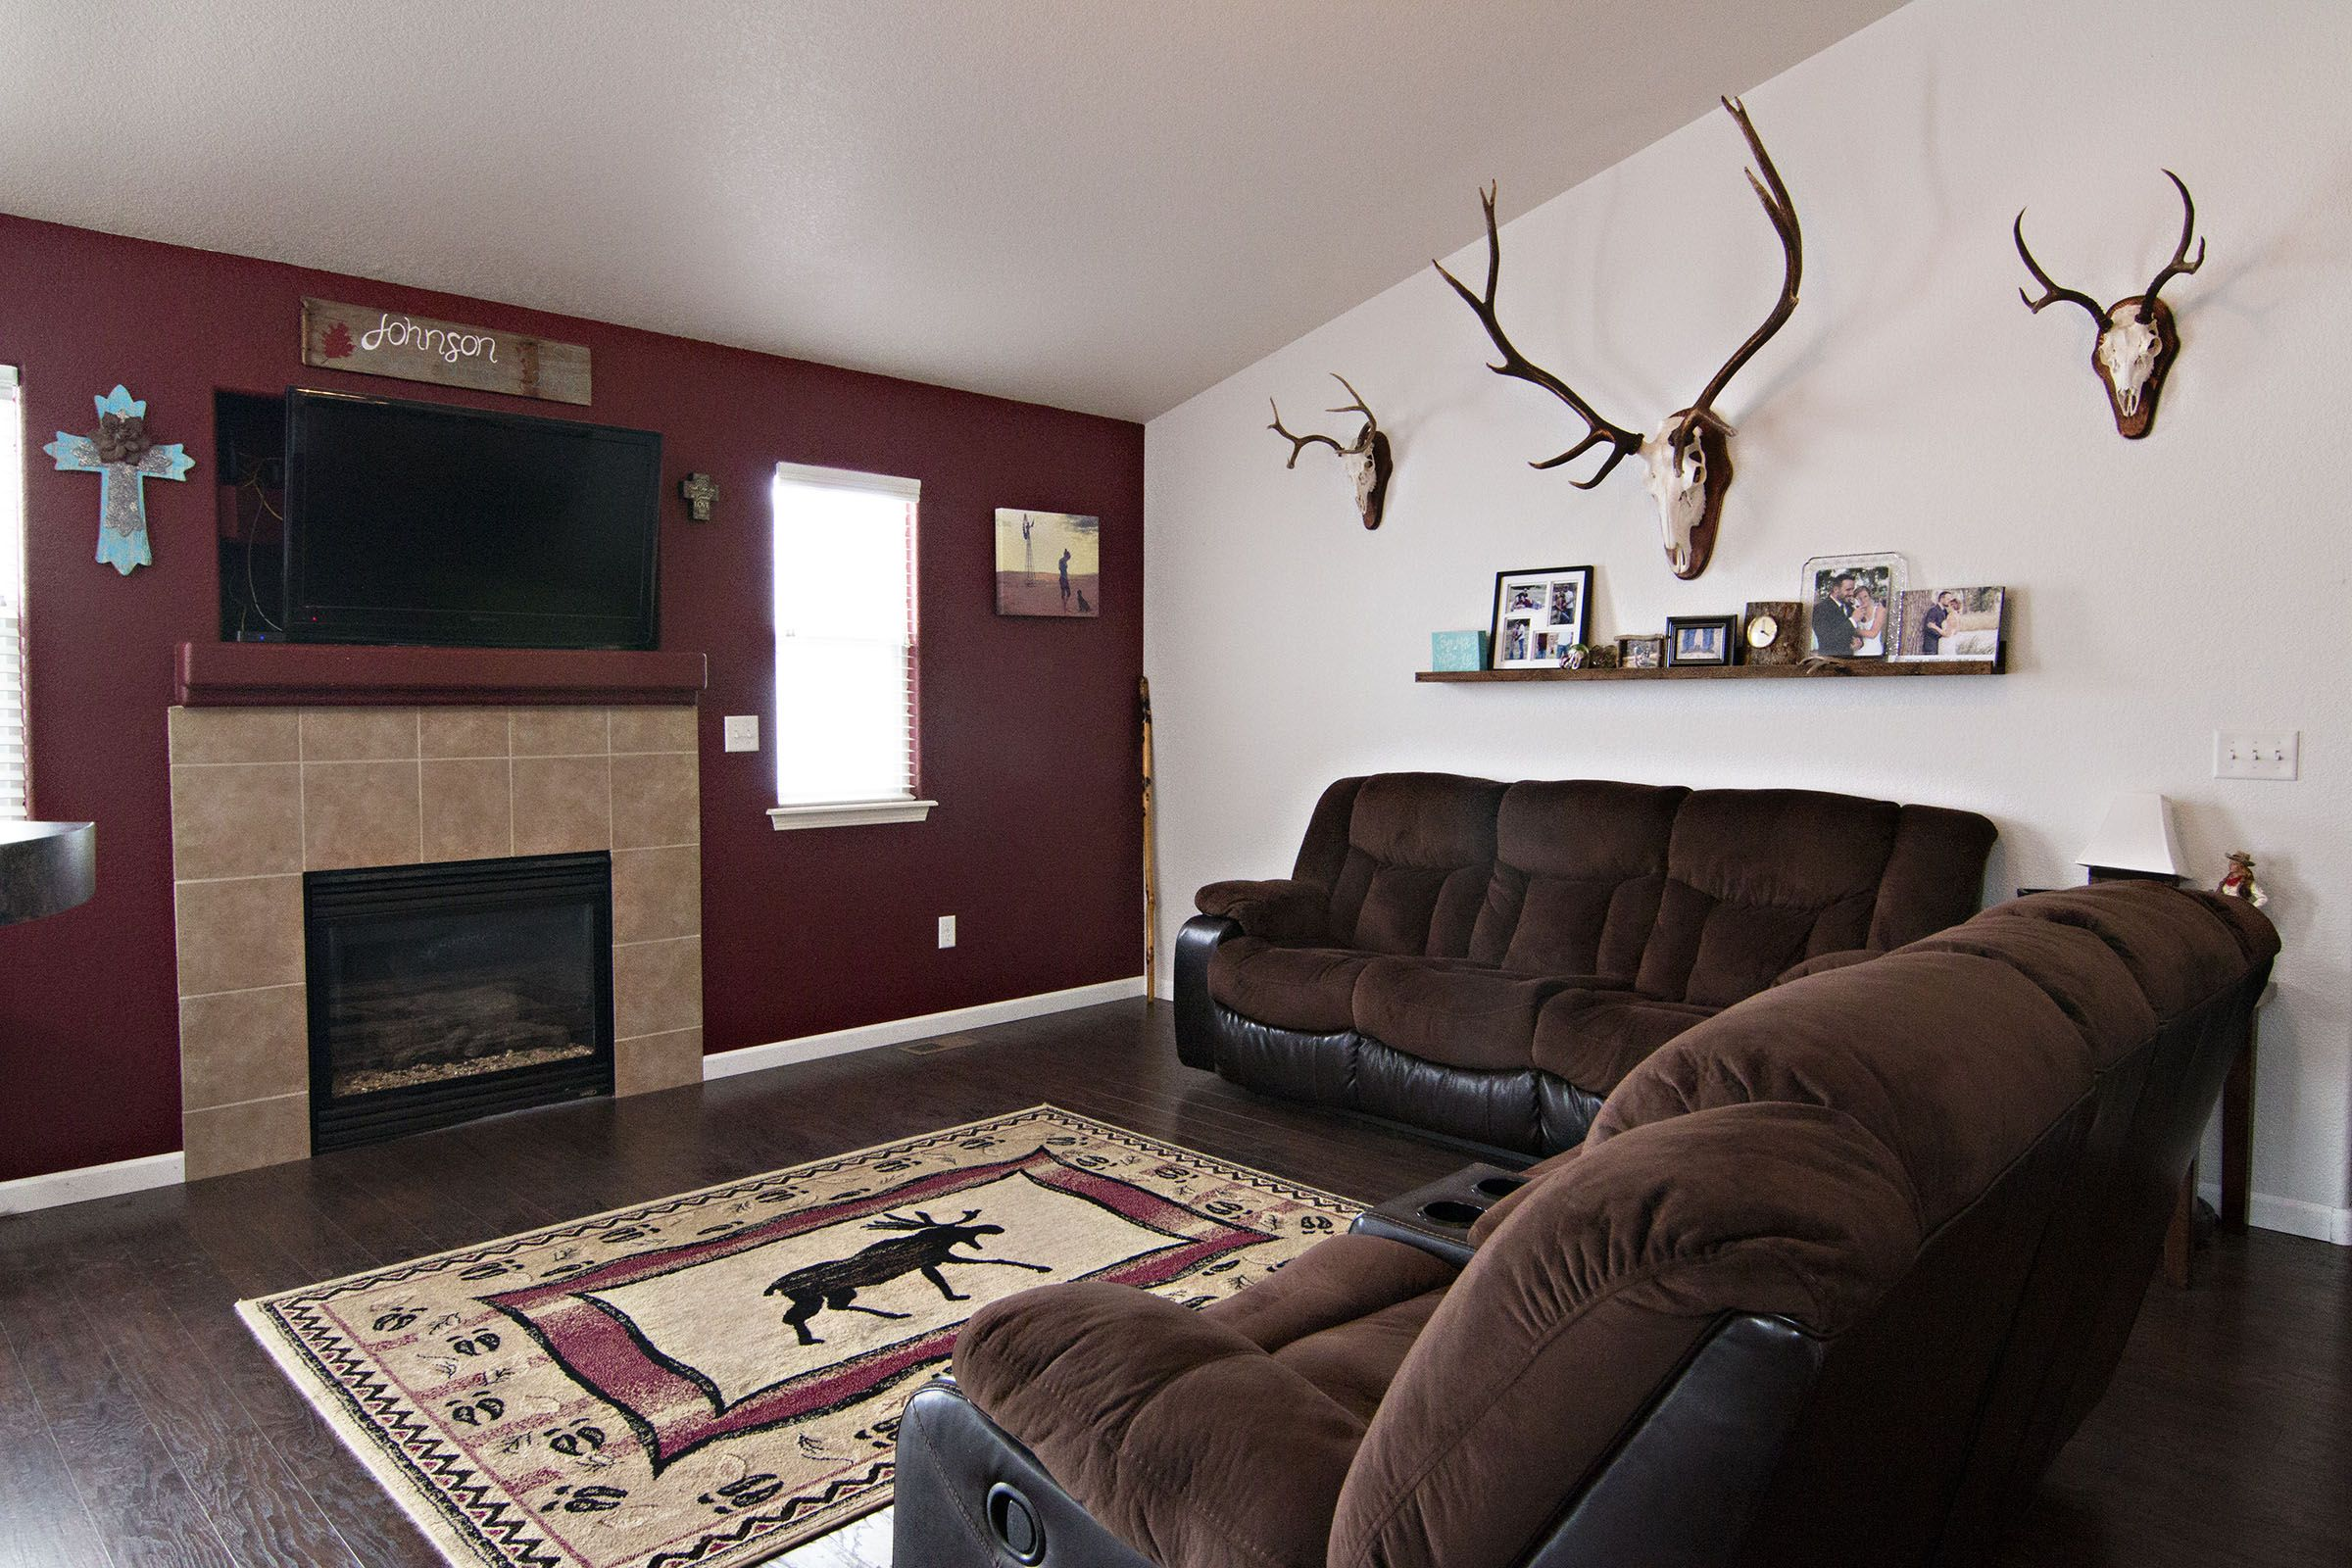 What Do You Think Of The Rustic Theme In The Living Room Of 1215